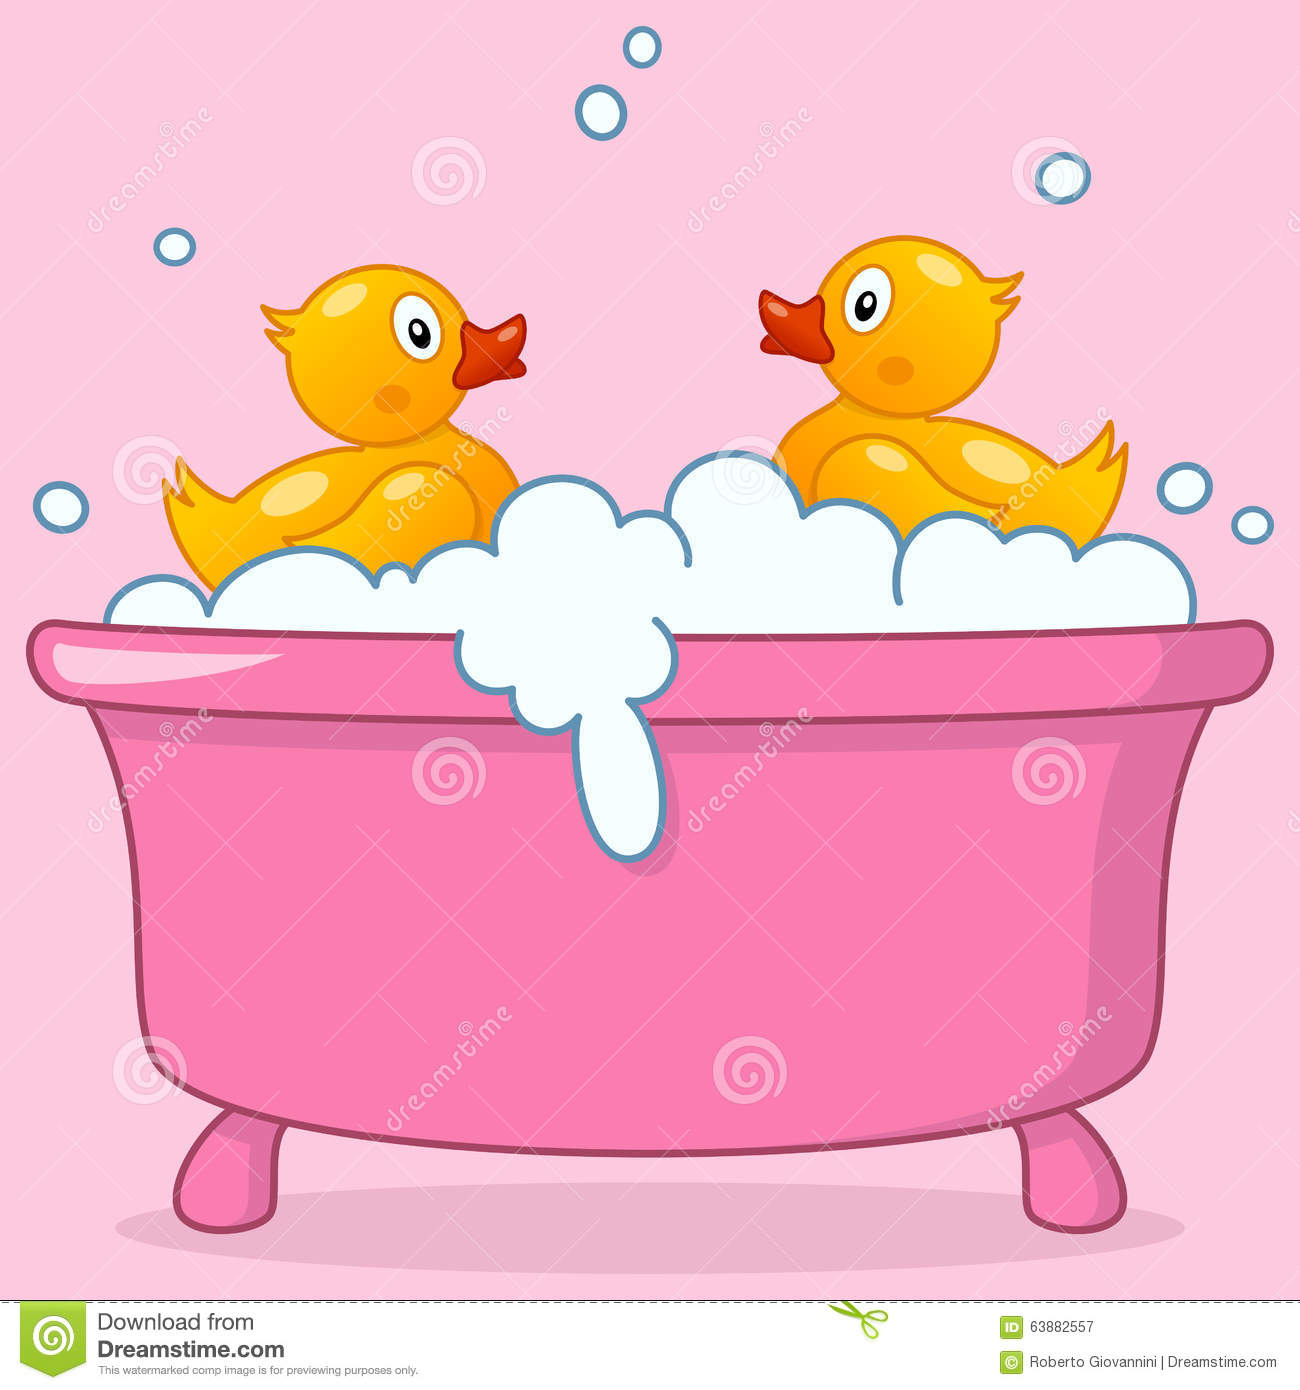 Cartoon Pictures Of Bathrooms: Ducks Cartoons, Illustrations & Vector Stock Images